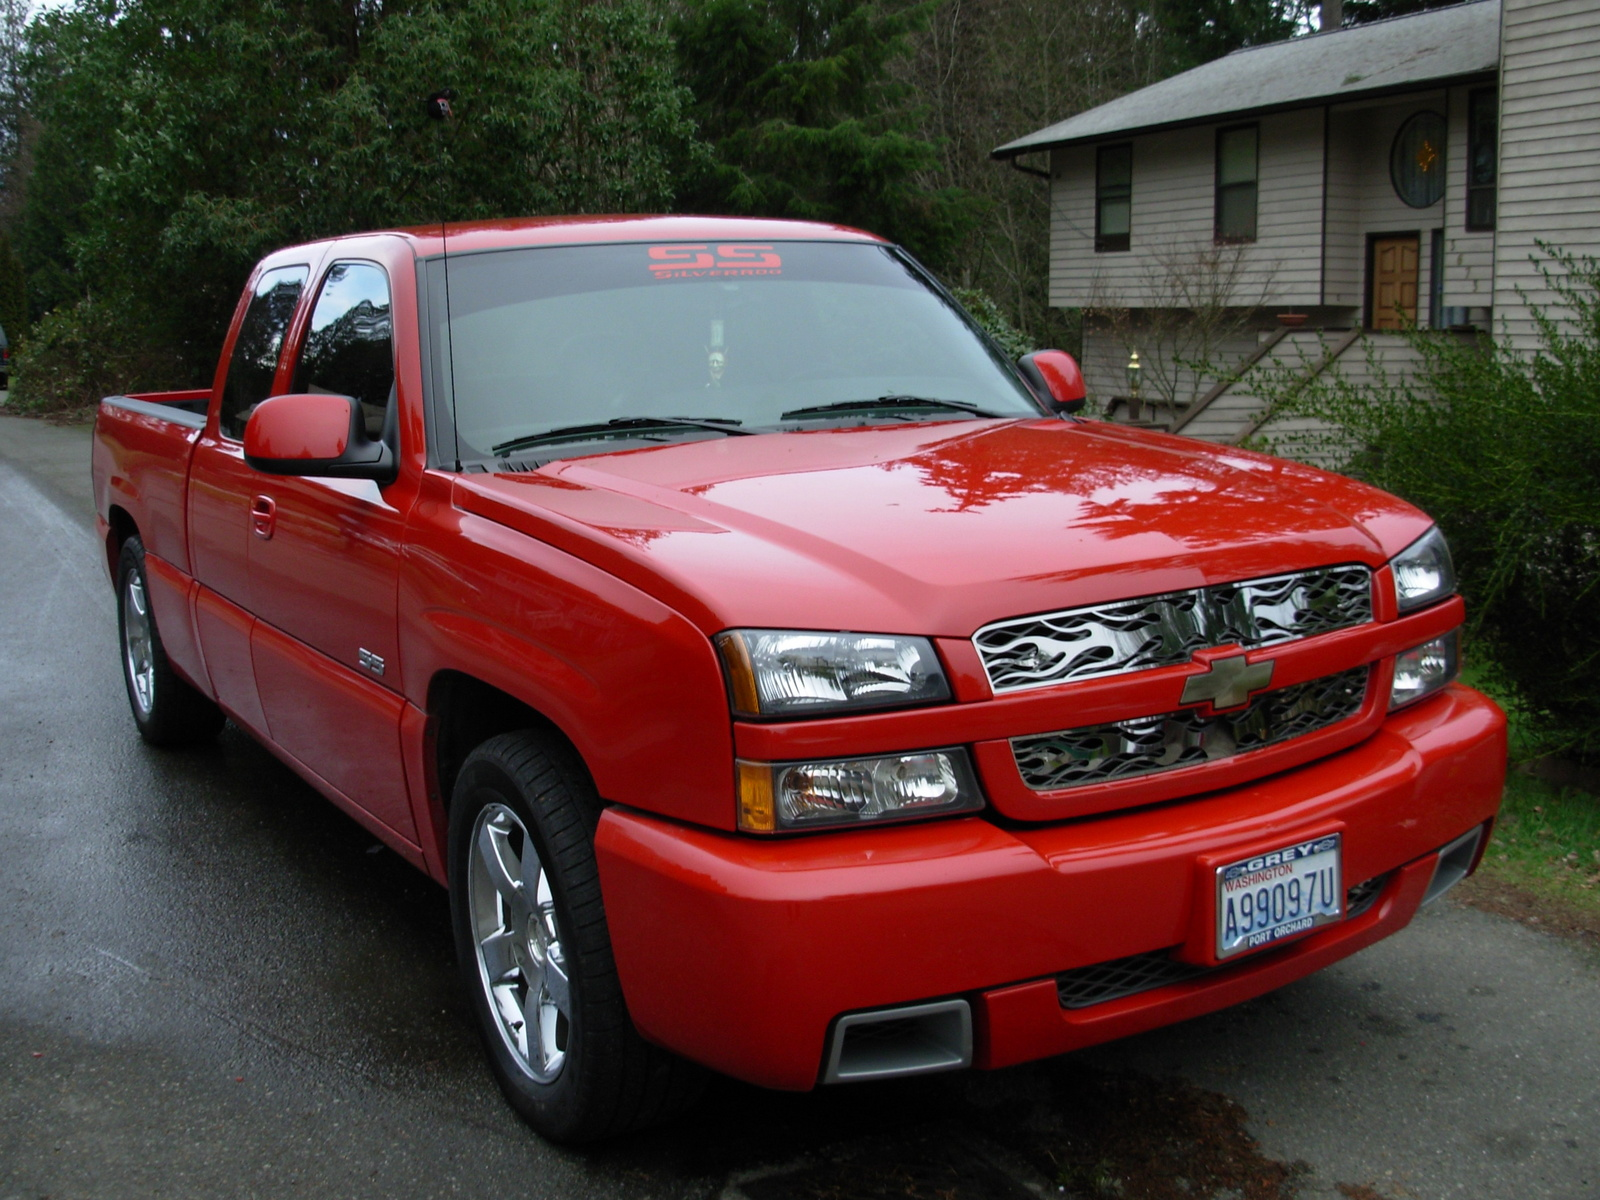 mike250 39 s 2004 chevrolet silverado 1500 ss 4 dr std awd extended cab. Cars Review. Best American Auto & Cars Review